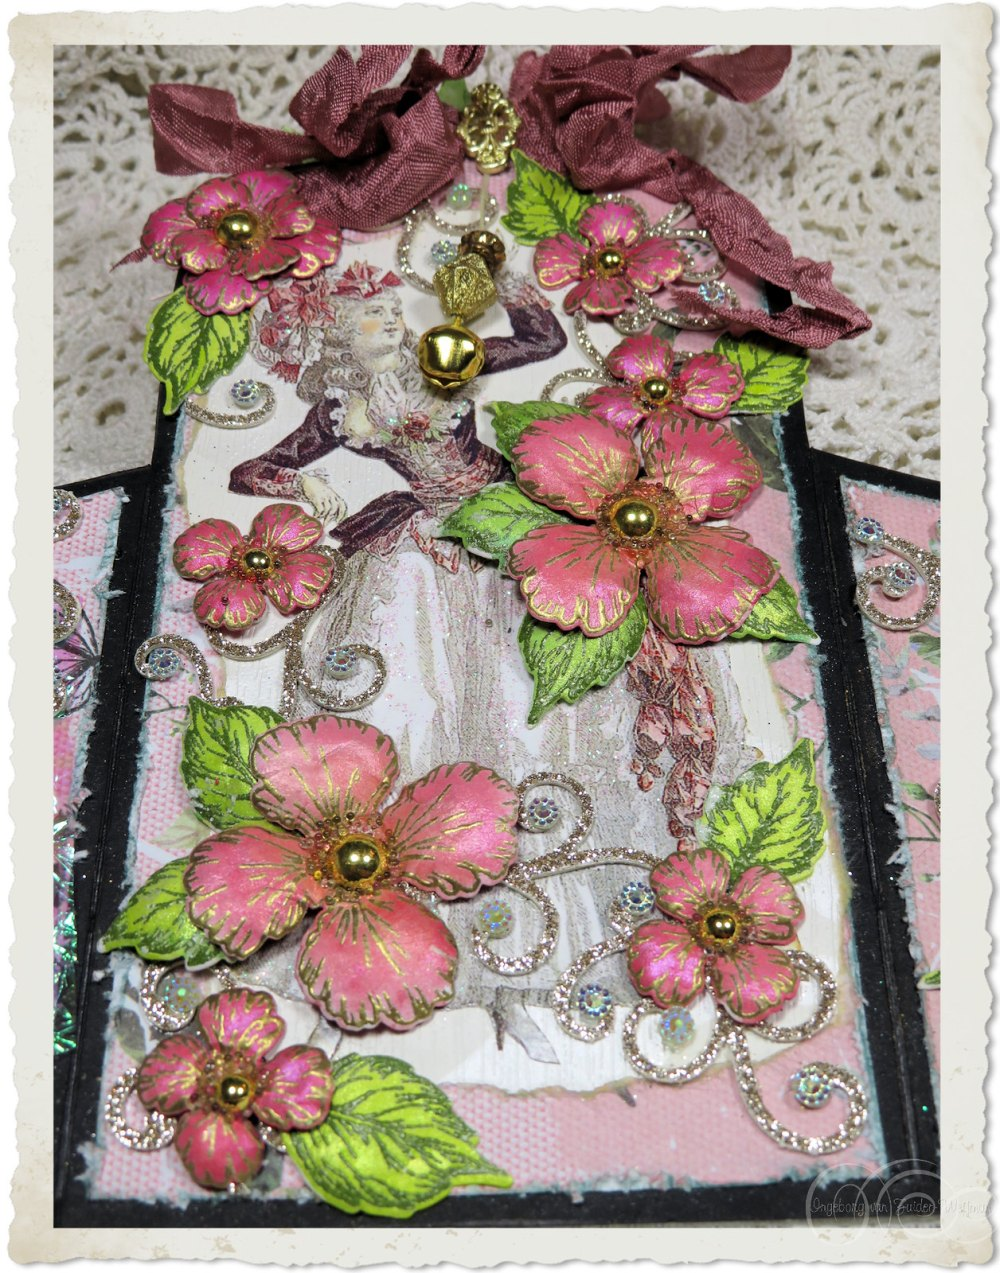 Details of the front of the Marie card with Oakberry Lane flowers from Heartfelt Creations